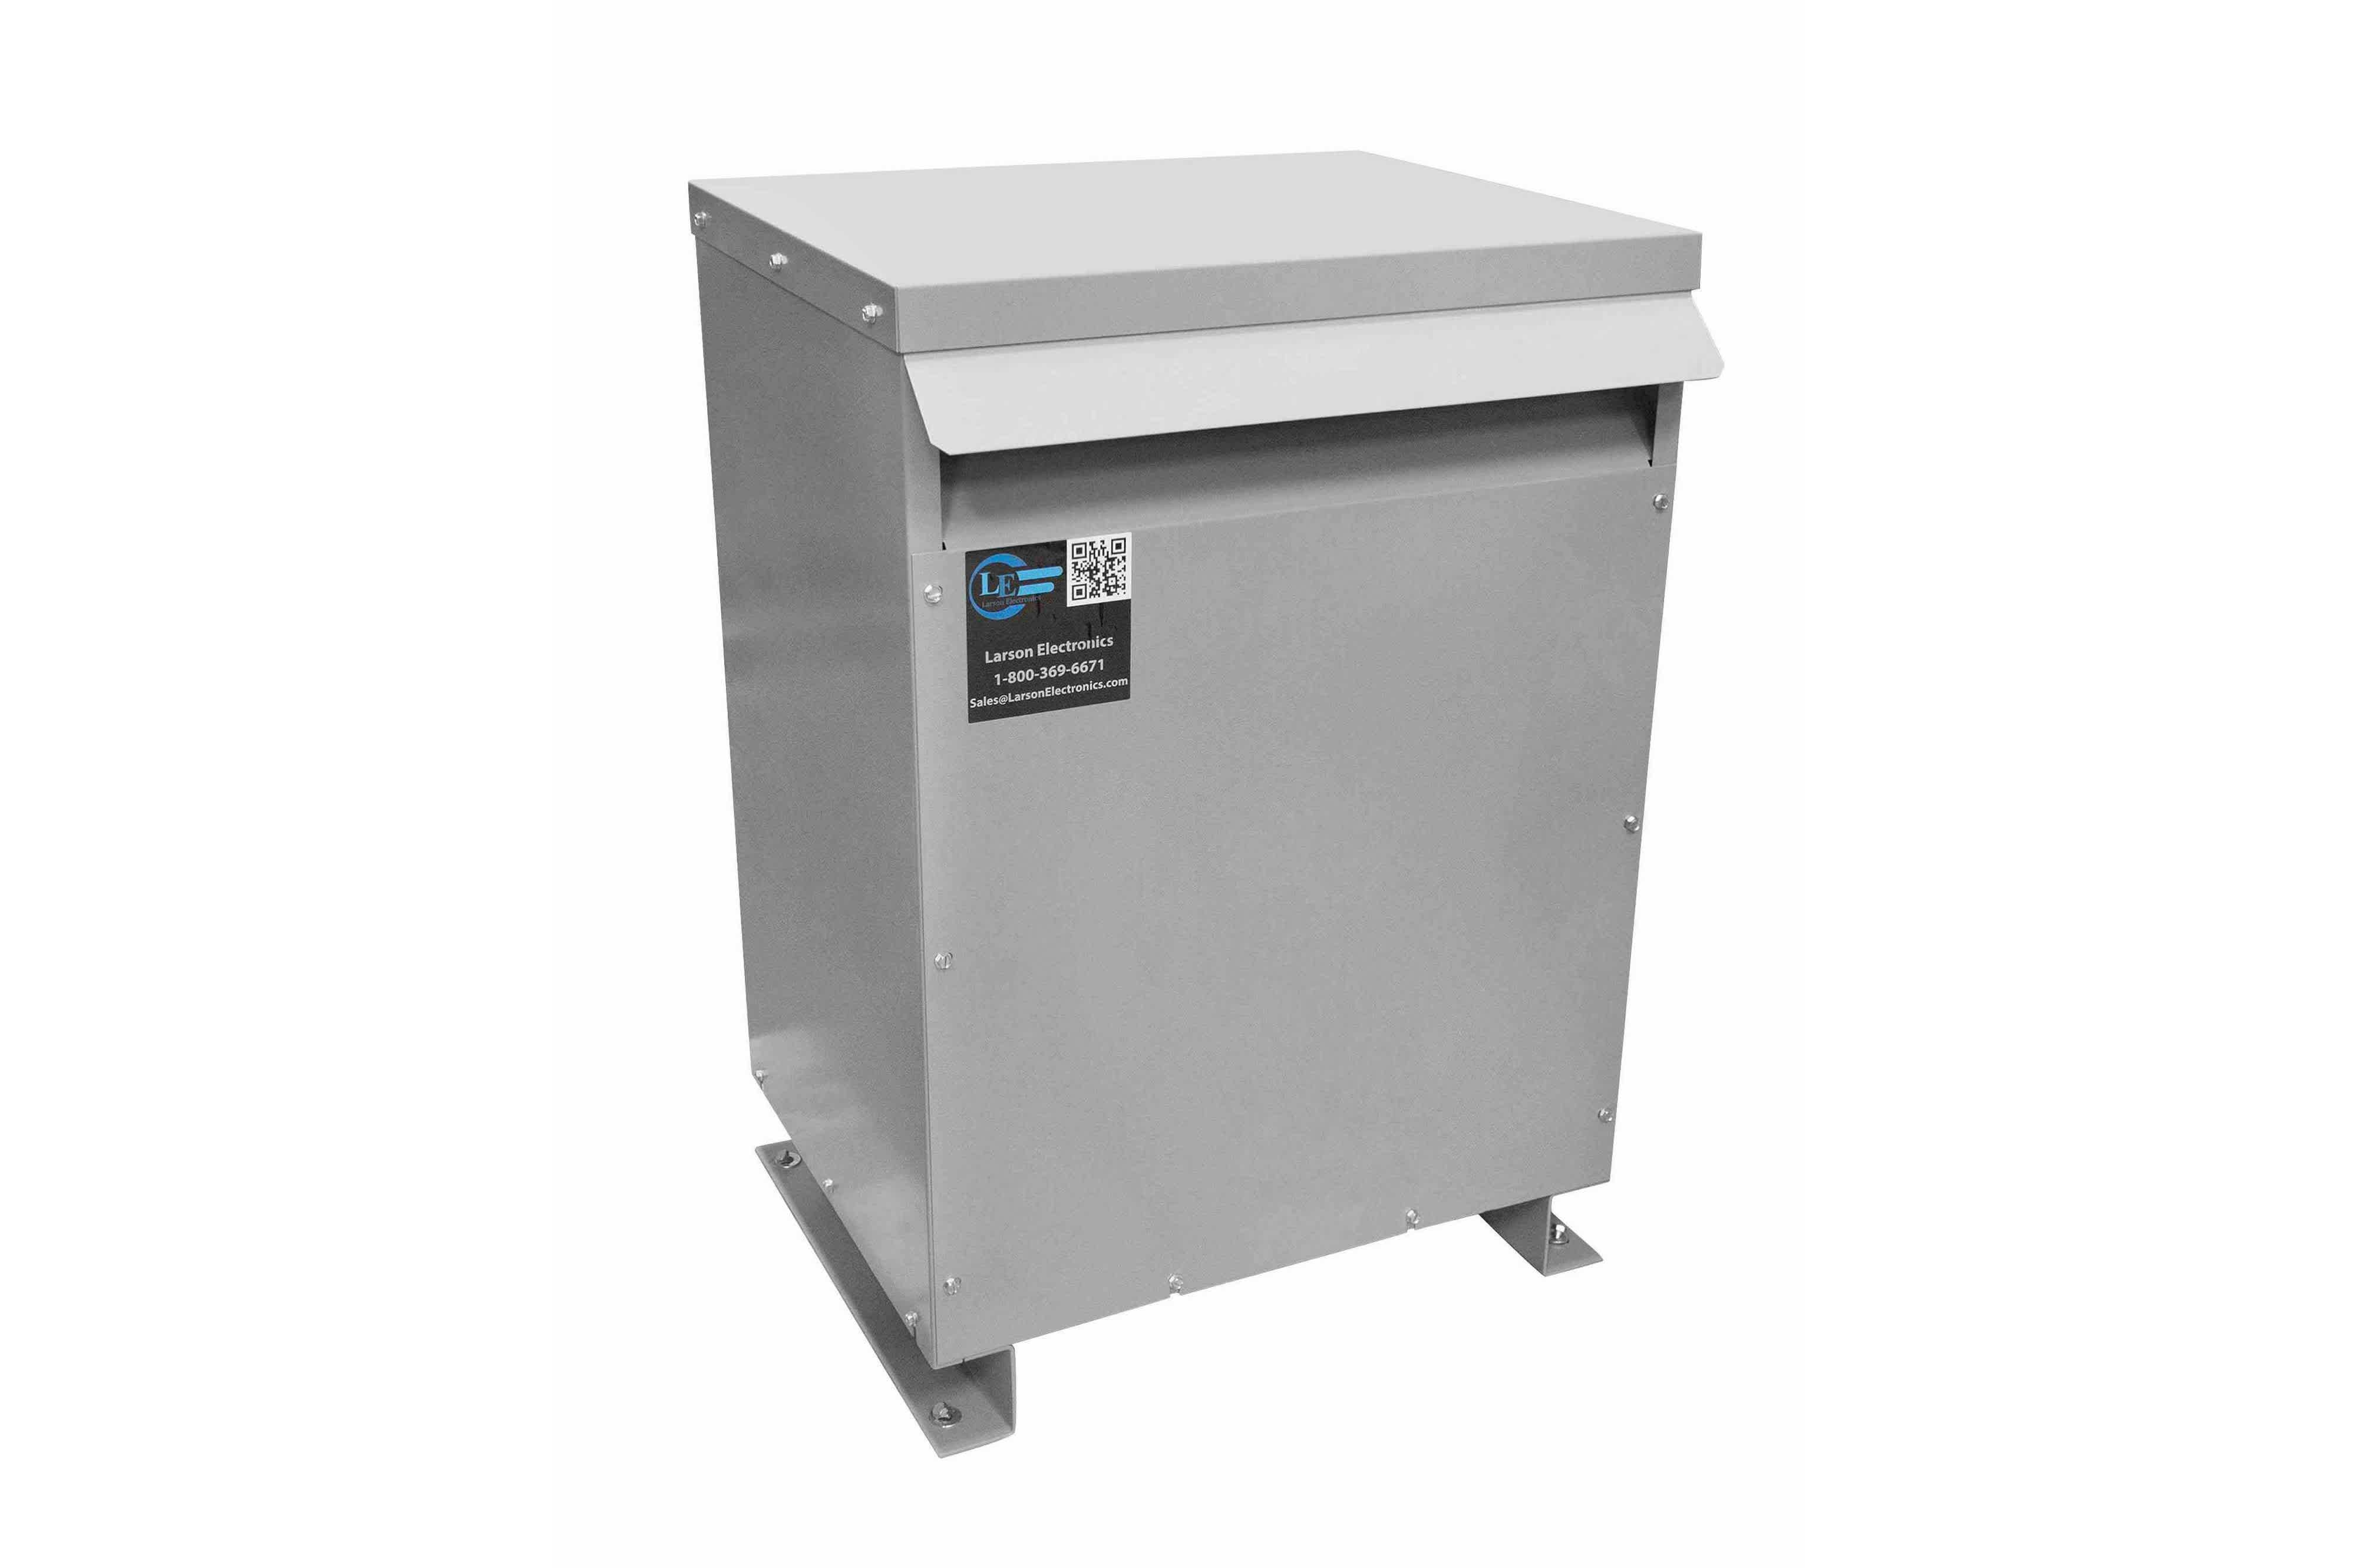 900 kVA 3PH Isolation Transformer, 460V Wye Primary, 415Y/240 Wye-N Secondary, N3R, Ventilated, 60 Hz